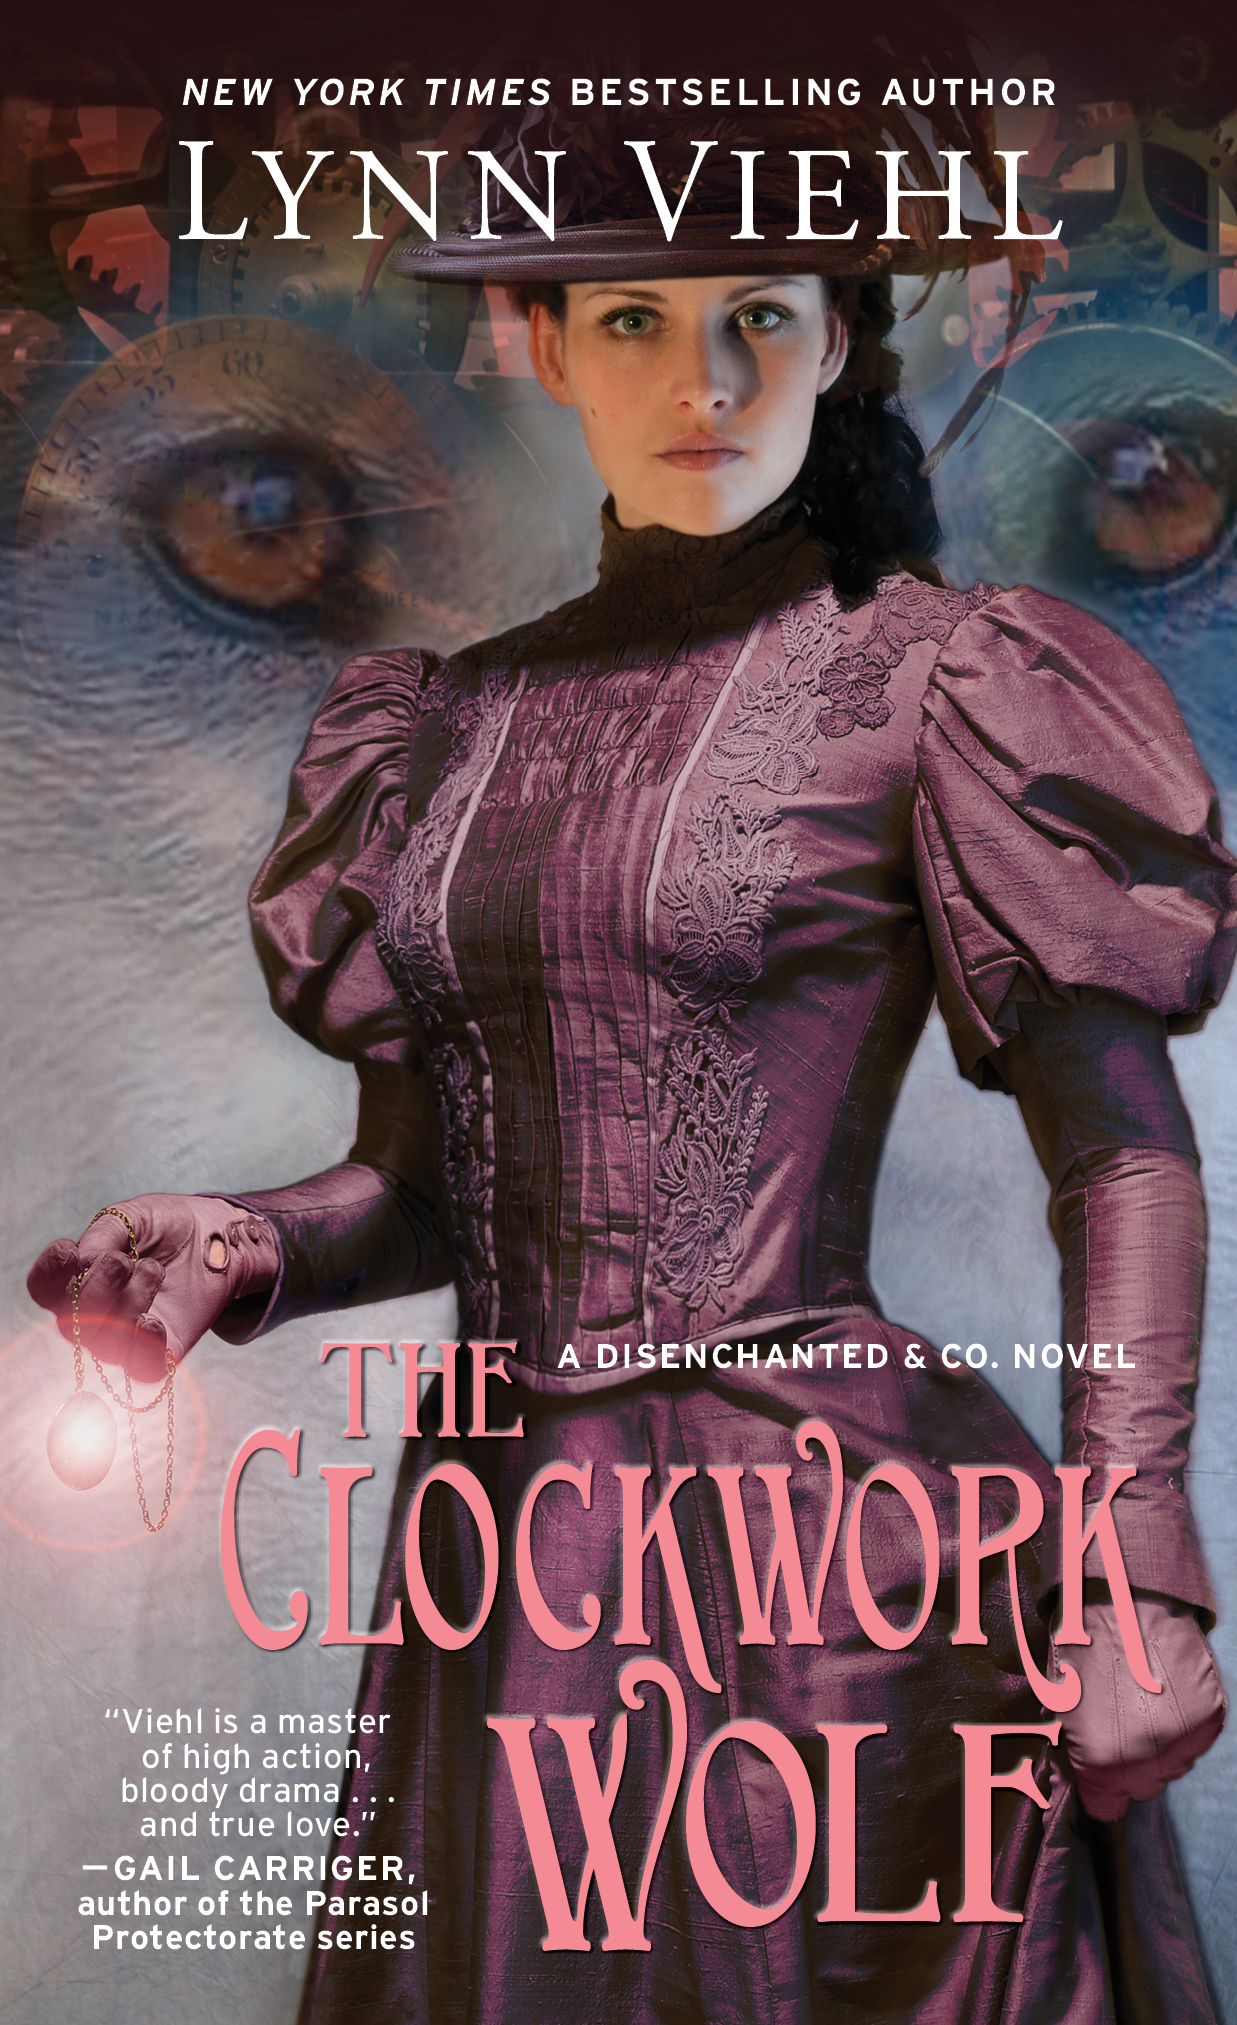 Clockwork-wolf-9781476722375_hr